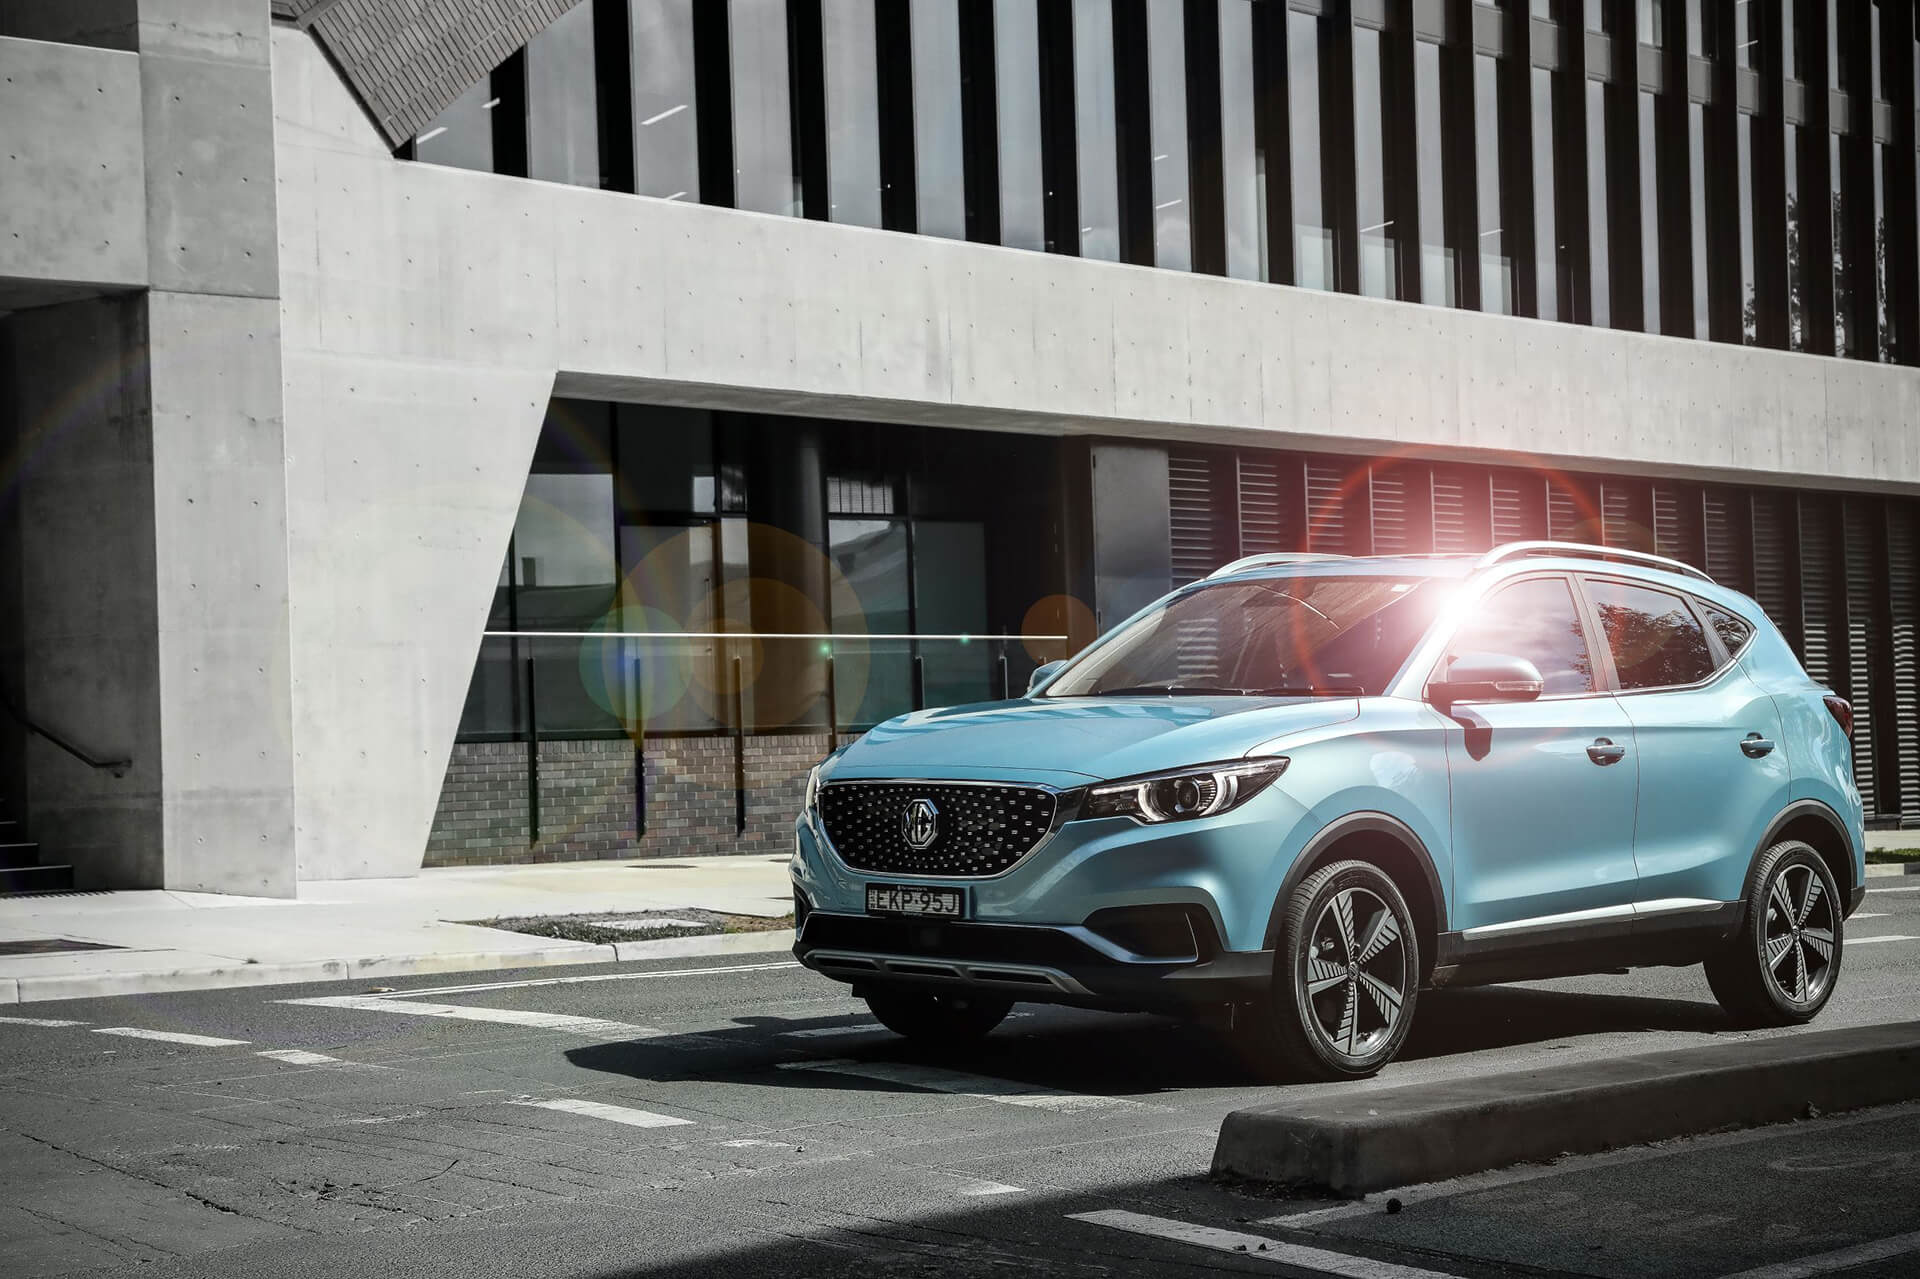 Electric for Everyone: MG Motor Officially Launches Its First Full-Electric SUV